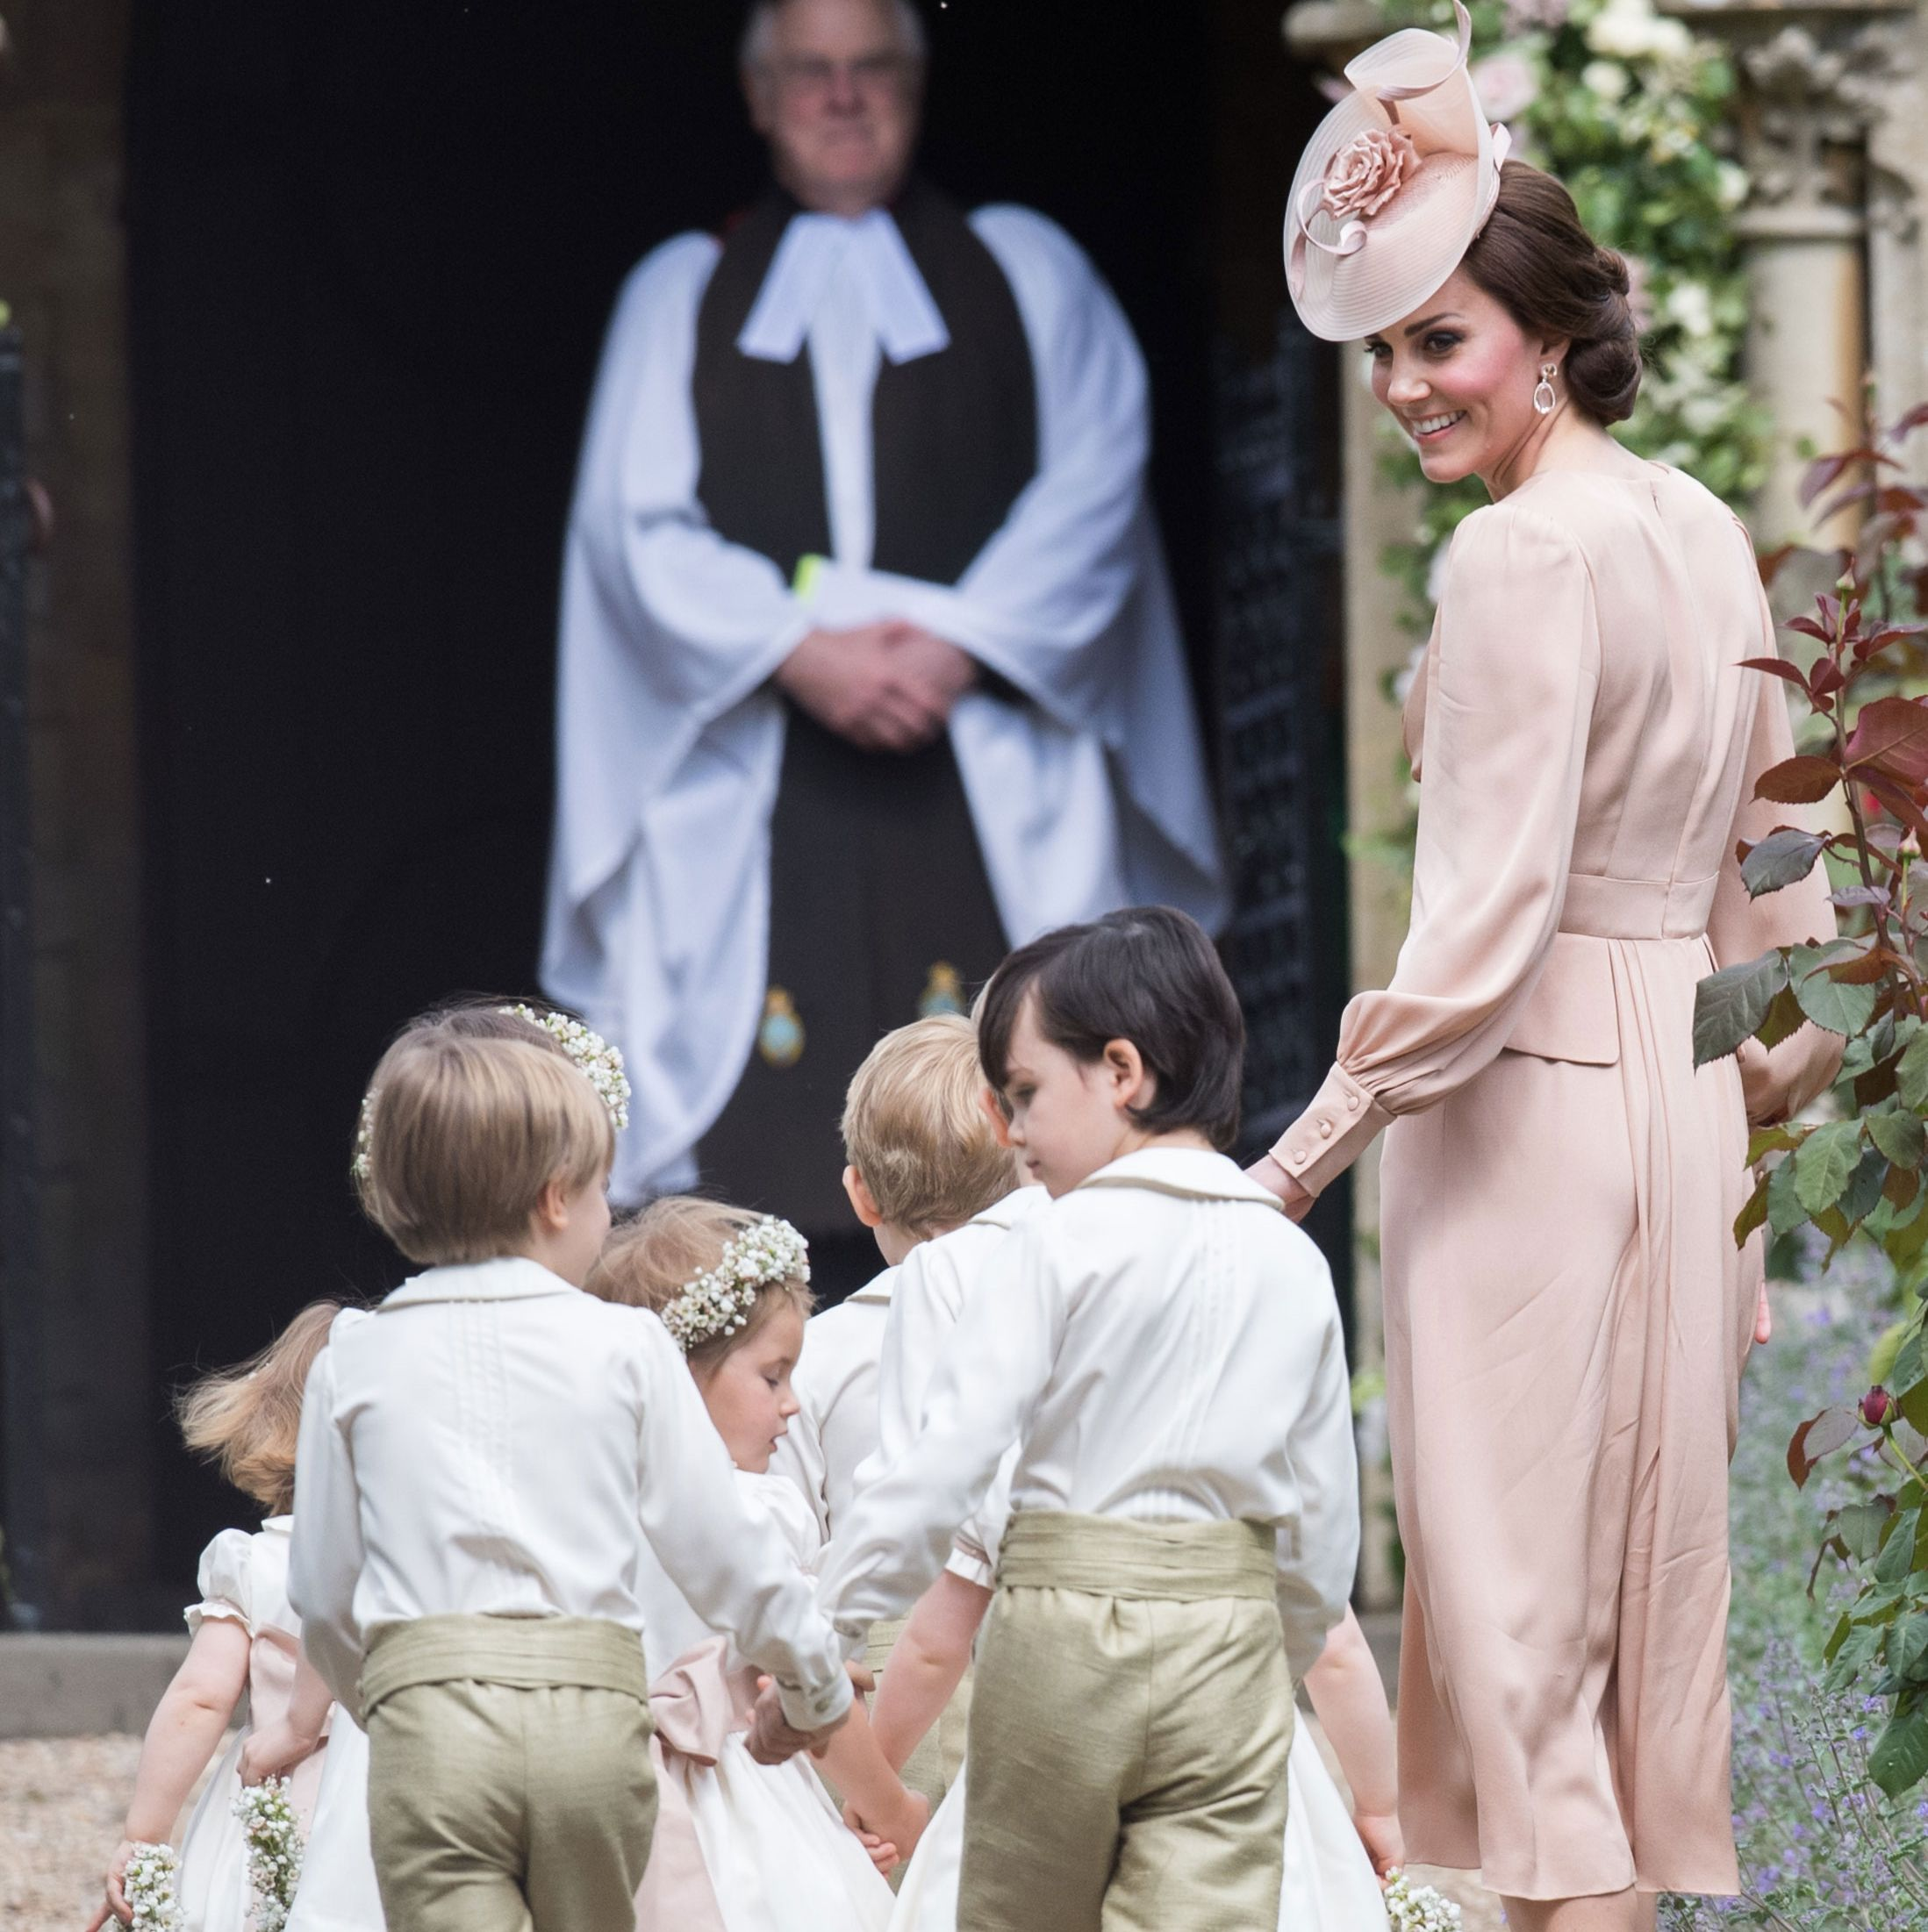 kate-middleton-pippa-wedding-guest-dress-outfit